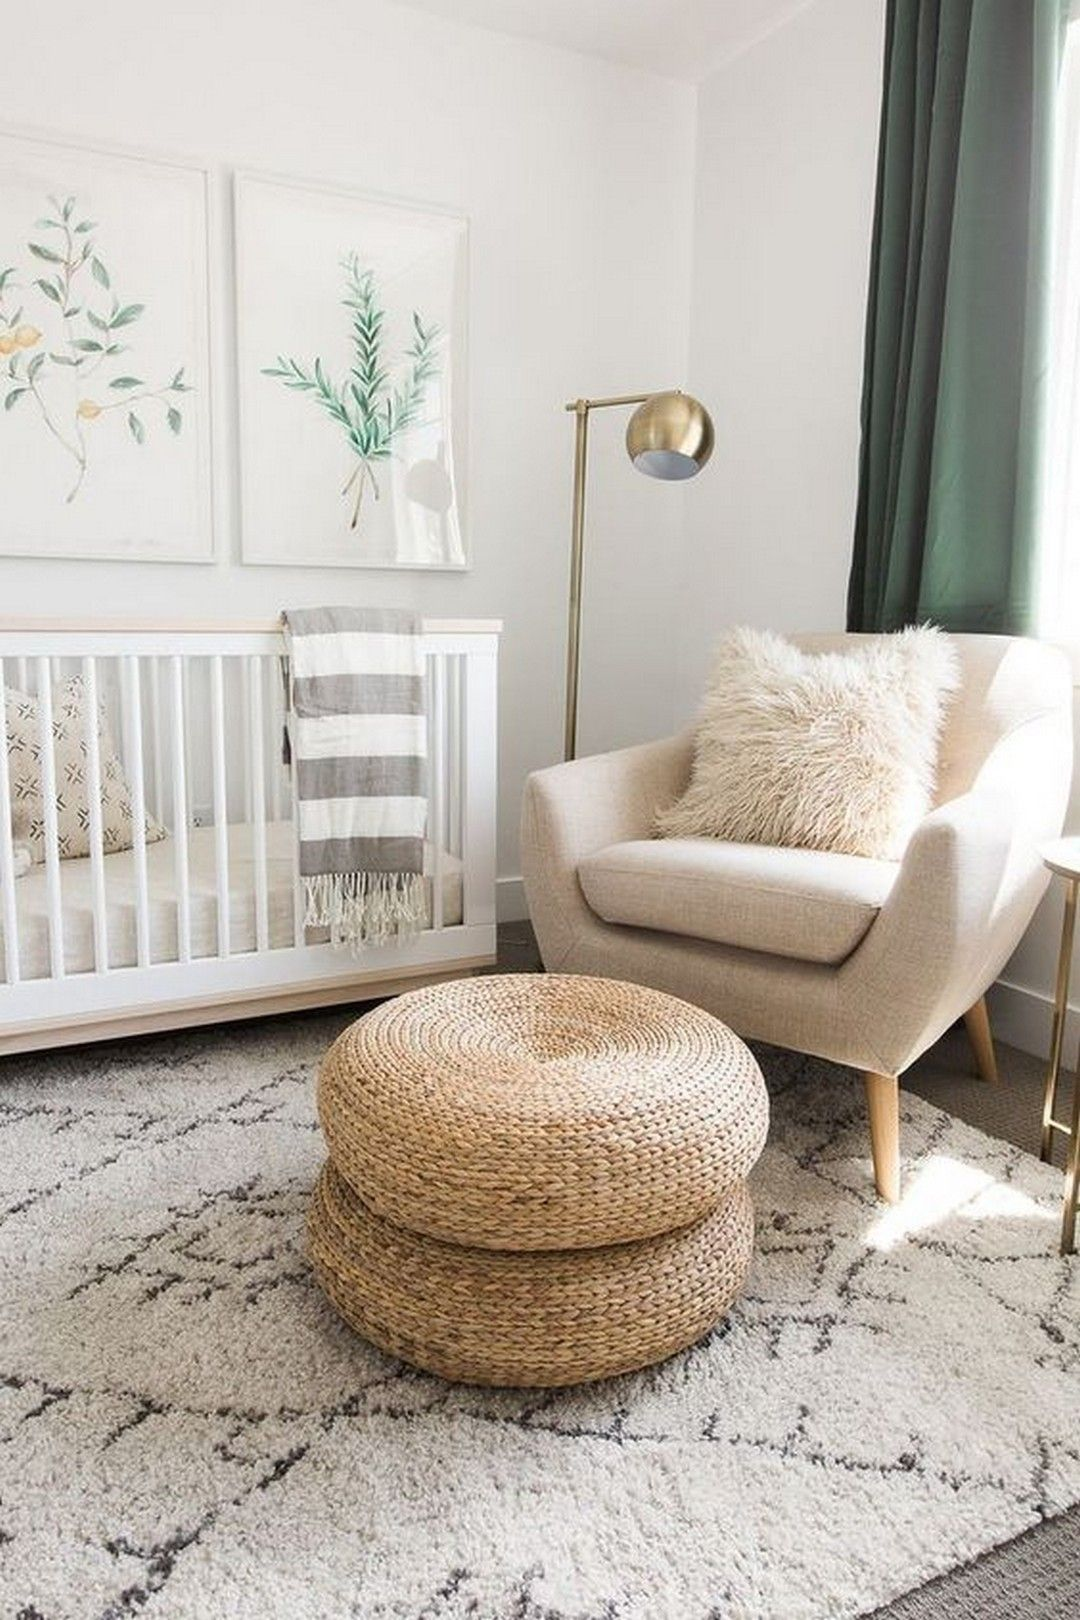 29 Baby Cribs Decorating for Your Inspirations | Crib, Decorating ...